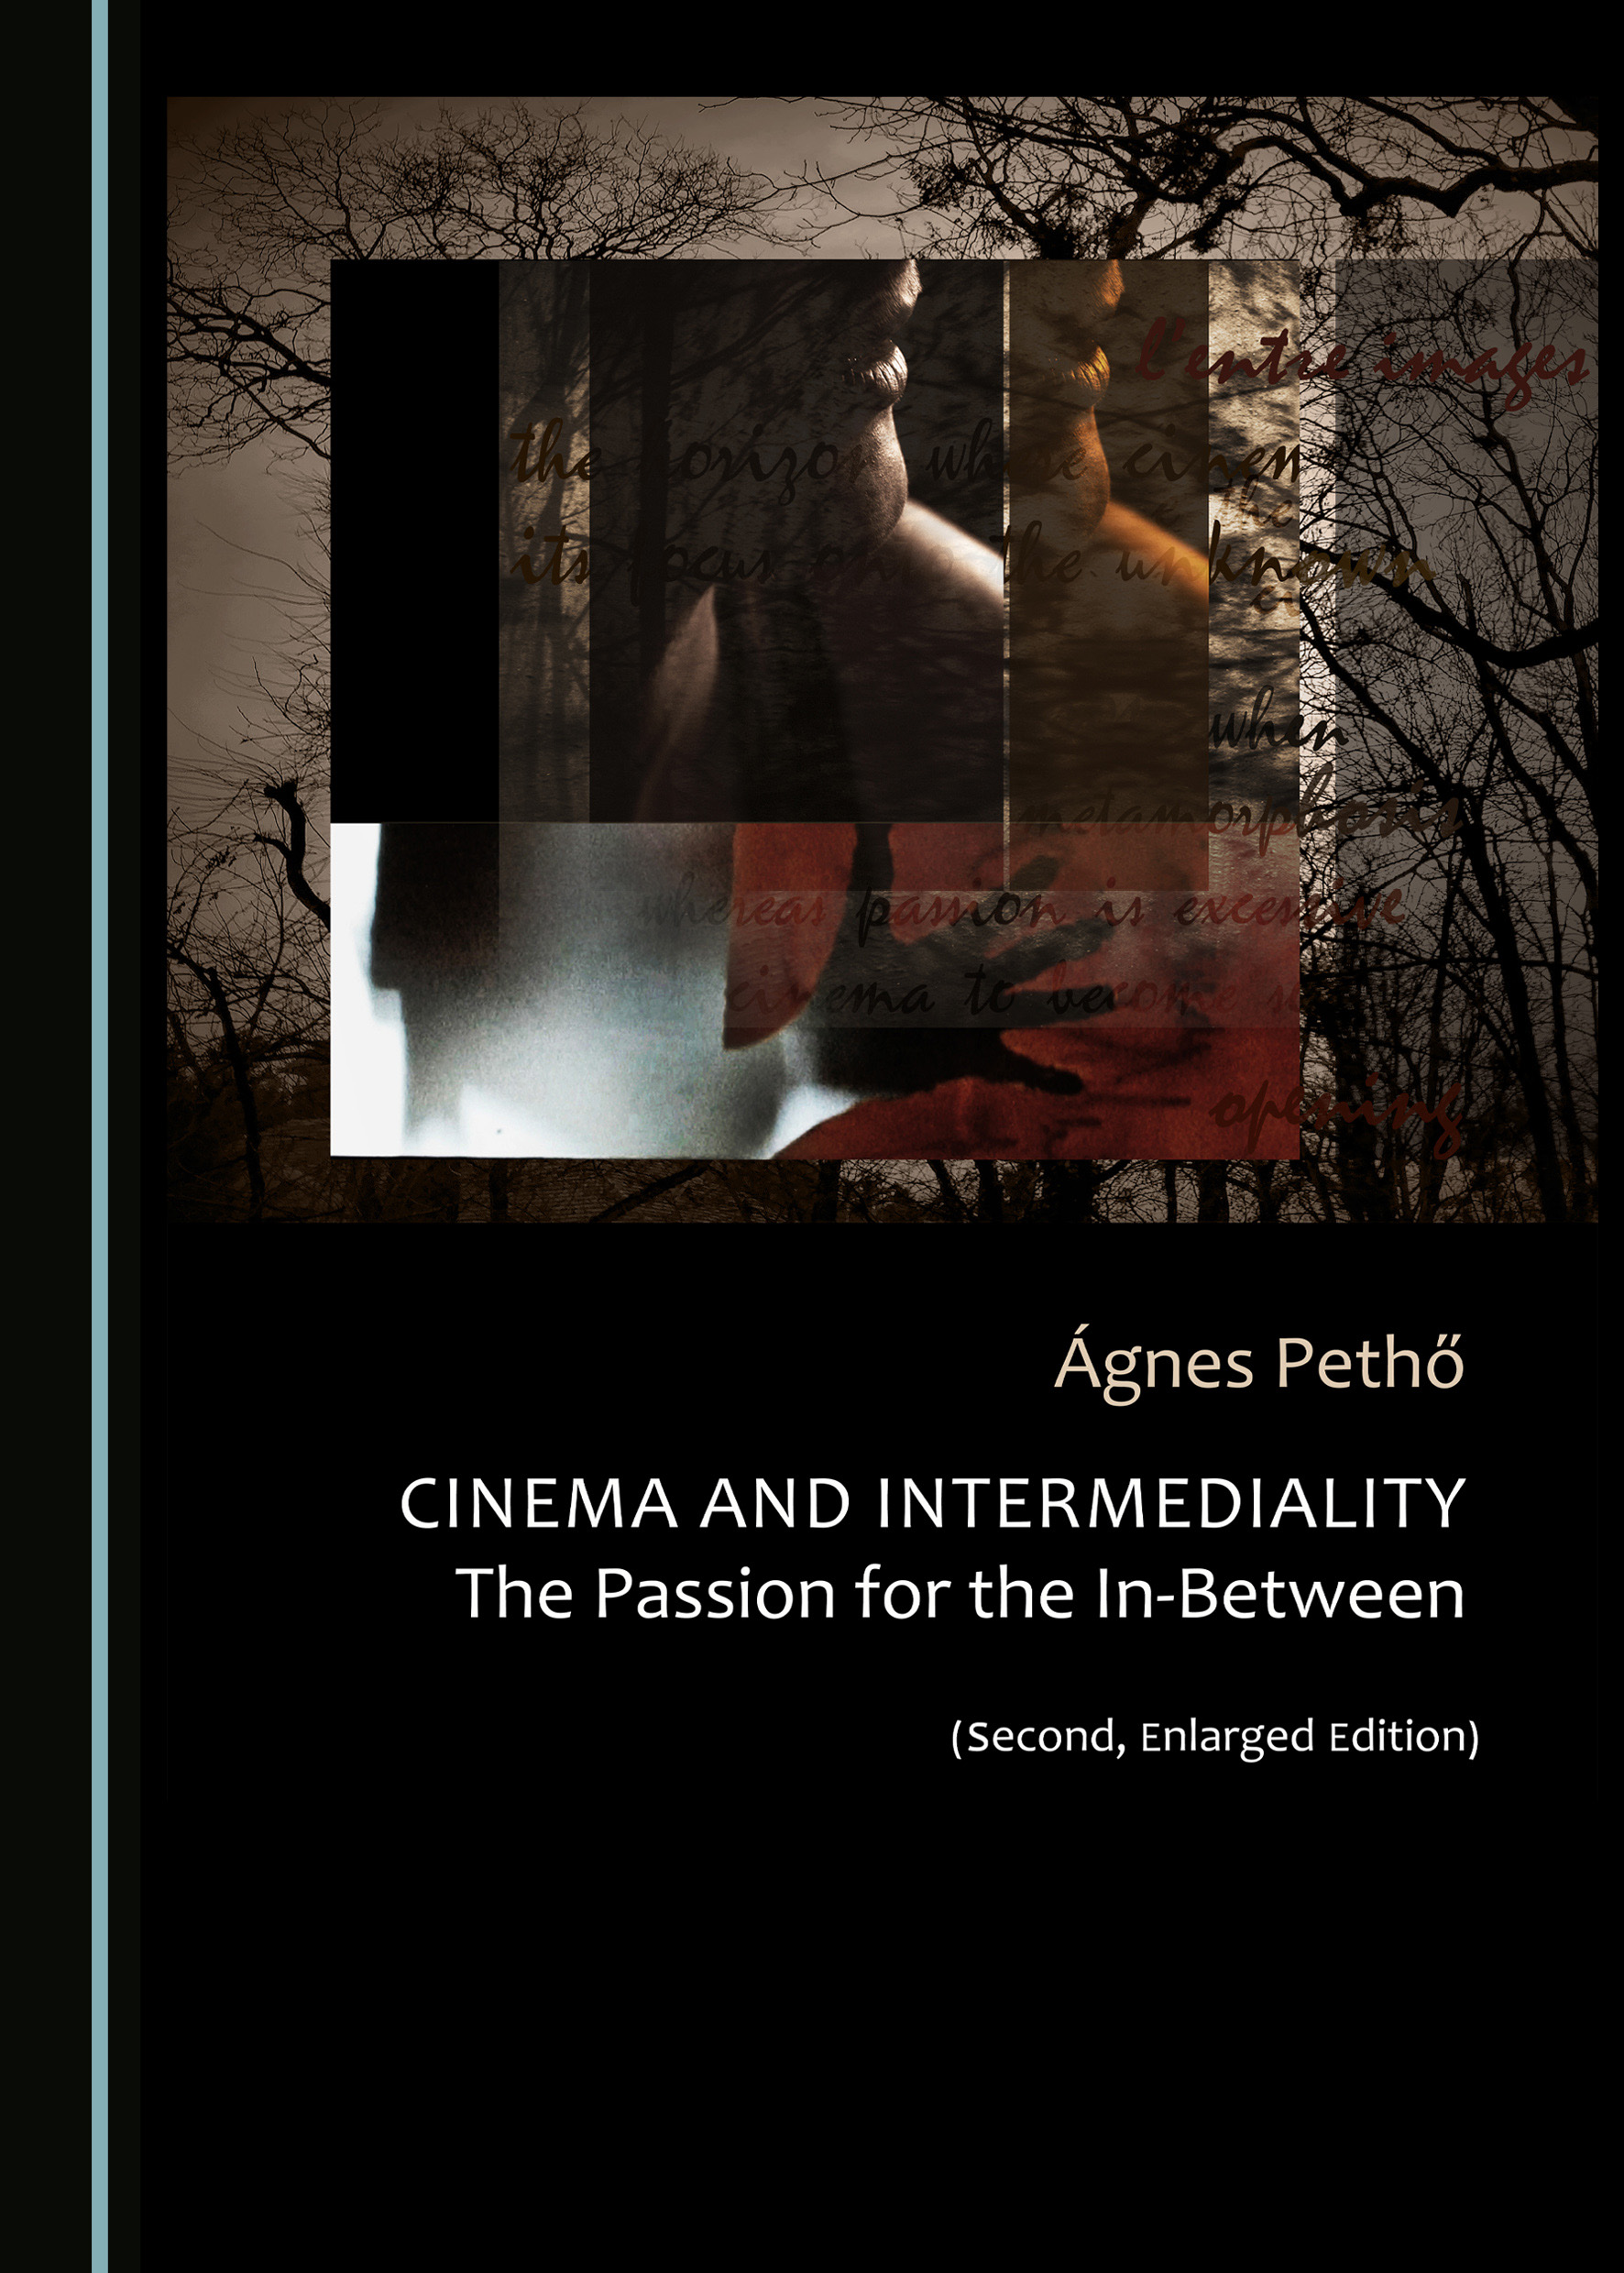 Cinema and Intermediality (Second, Enlarged Edition): The Passion for the In-Between